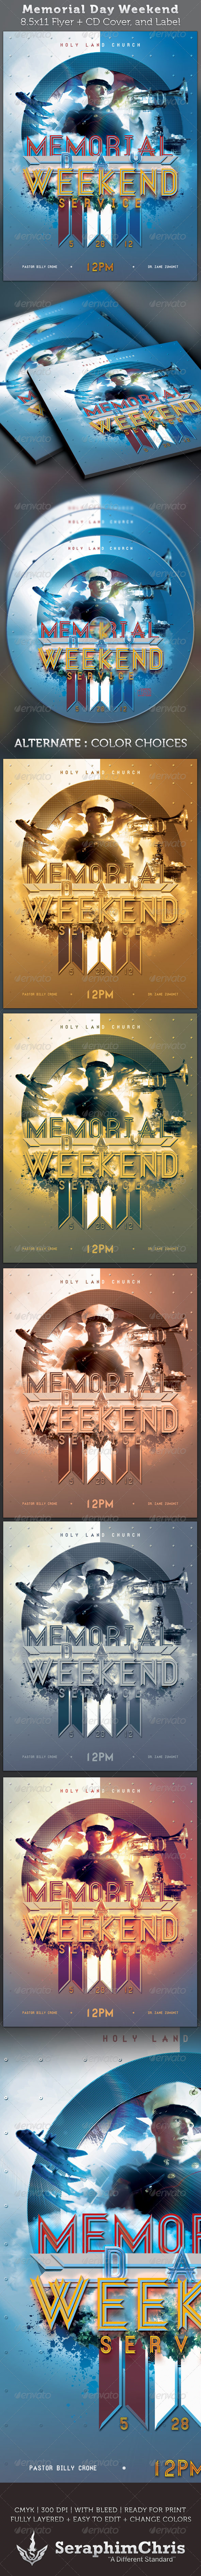 GraphicRiver Memorial Day Weekend Full Page Flyer and CD Cover 2224159